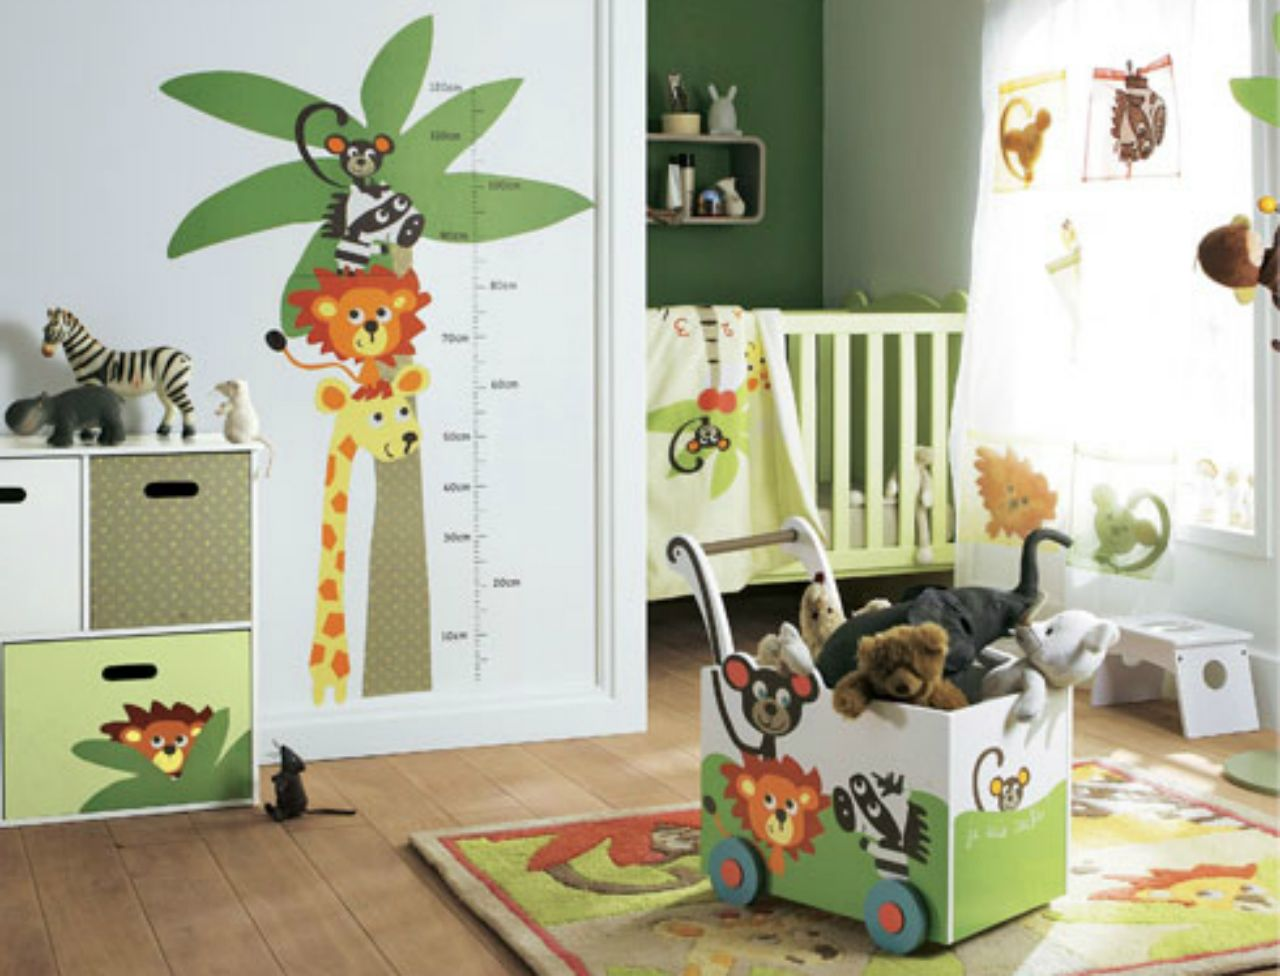 D coration chambre b b jungle bebe pinterest - Decoration de chambre pour bebe ...